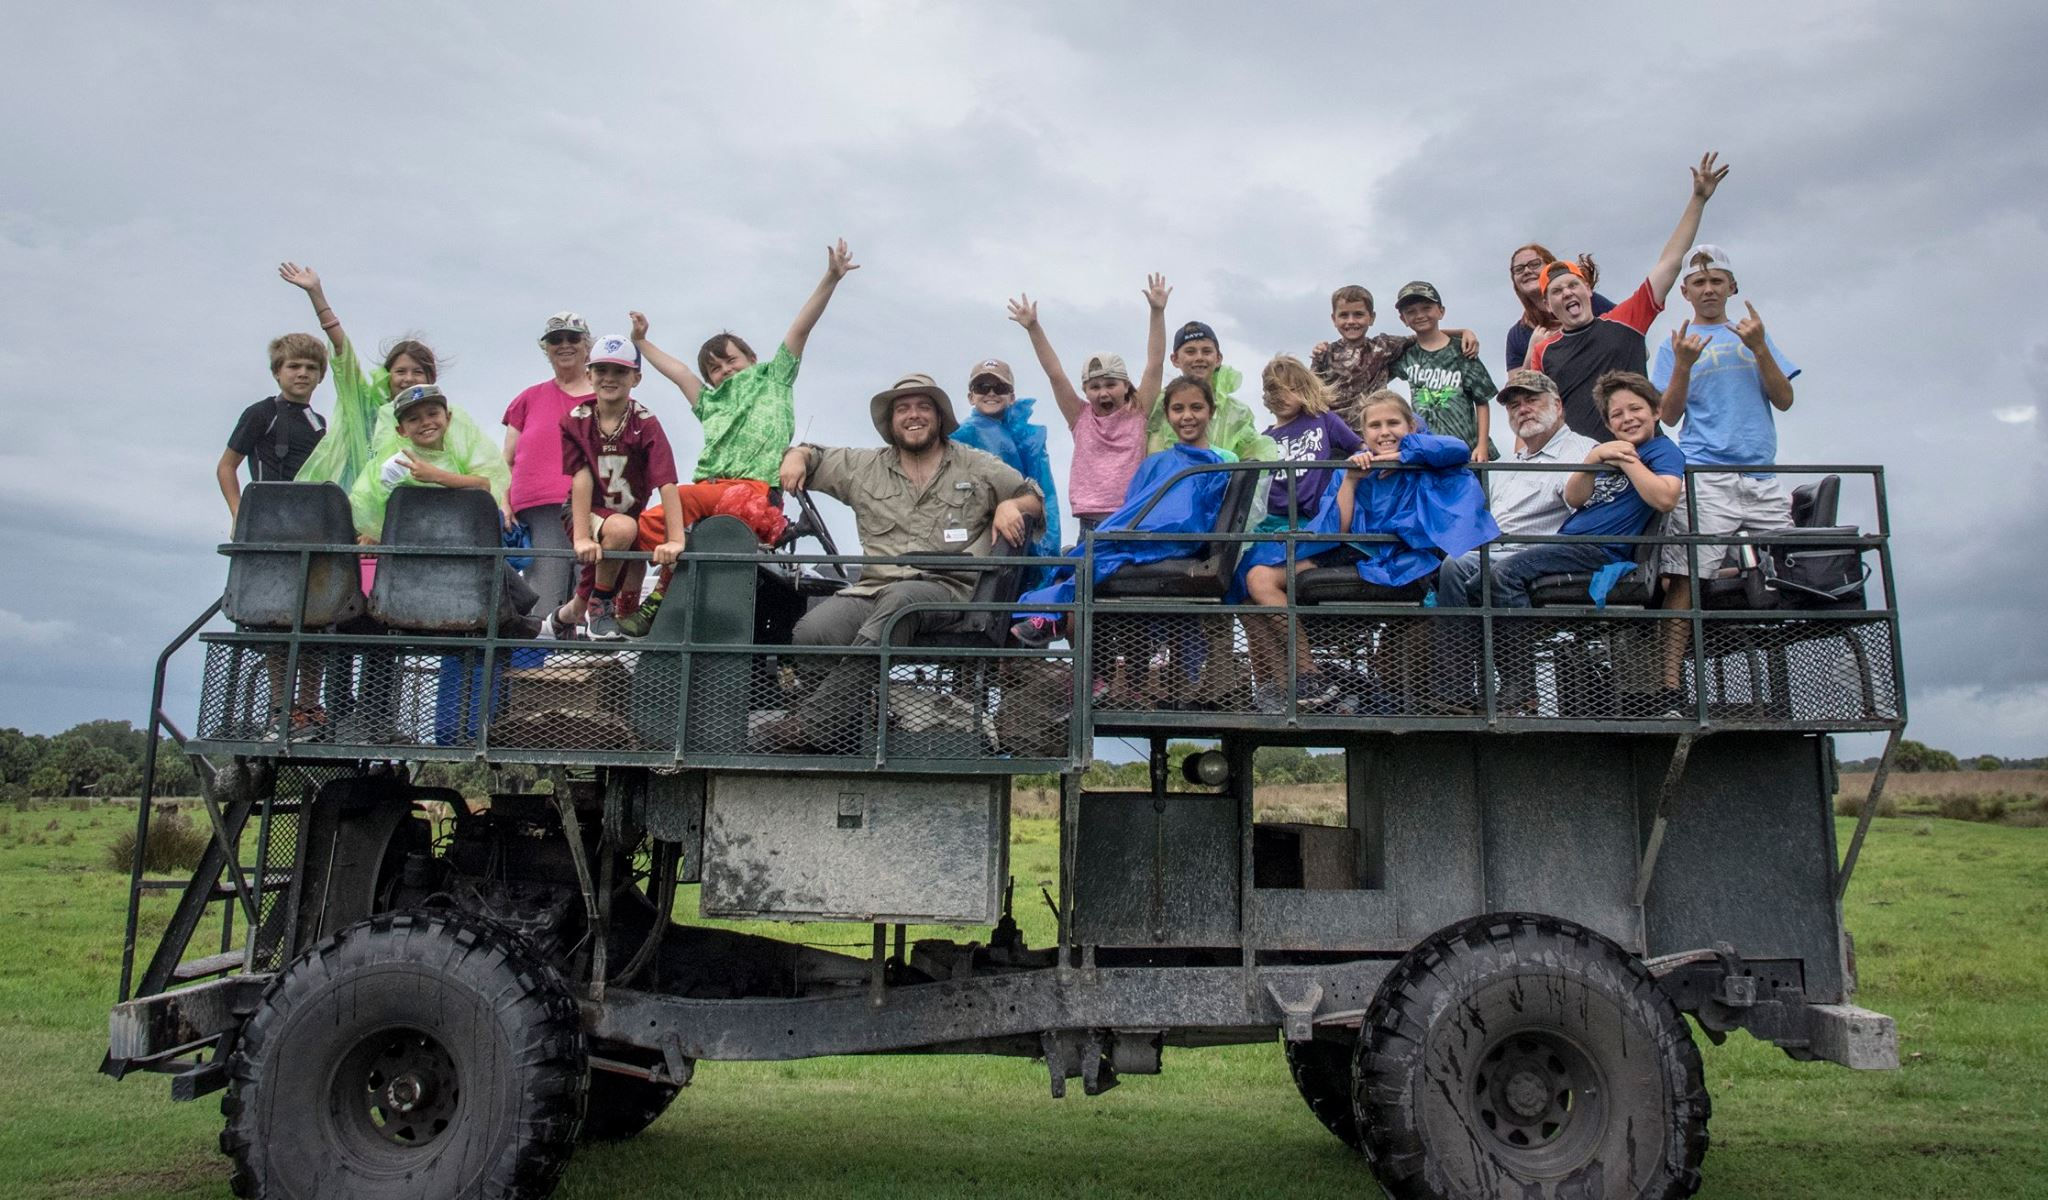 Dustin Angell leads summer camp students on a buggy tour. Photo courtesy of Archbold Biological Station.